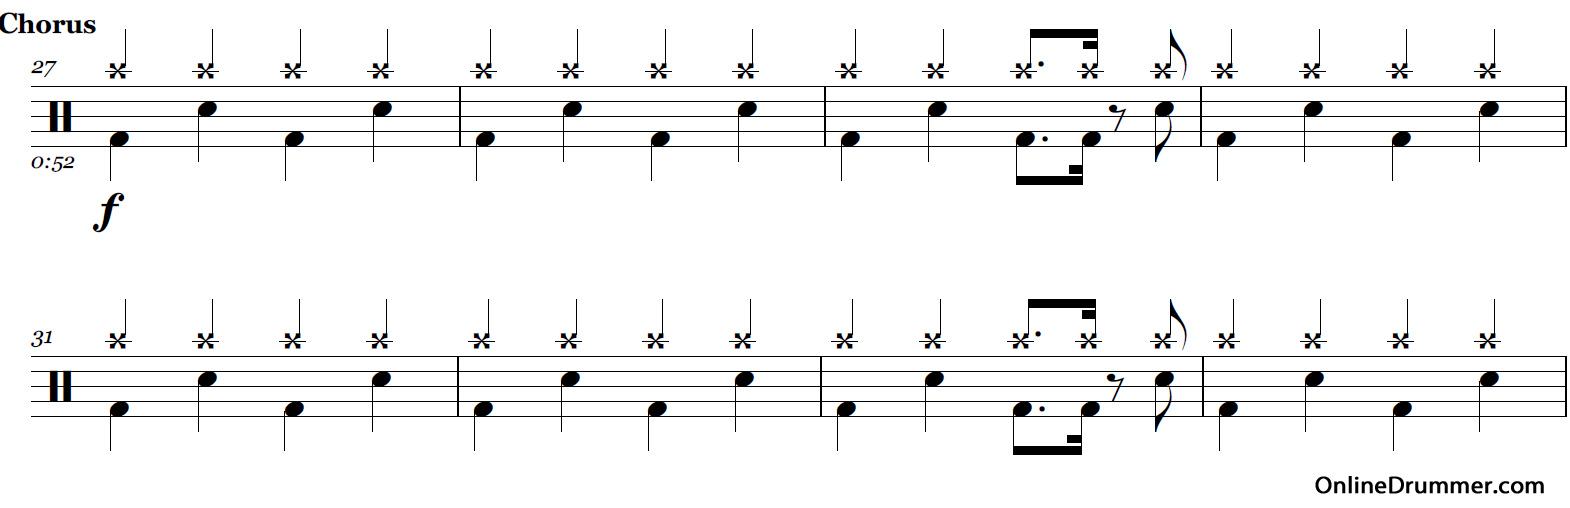 seven nation army drum sheet music